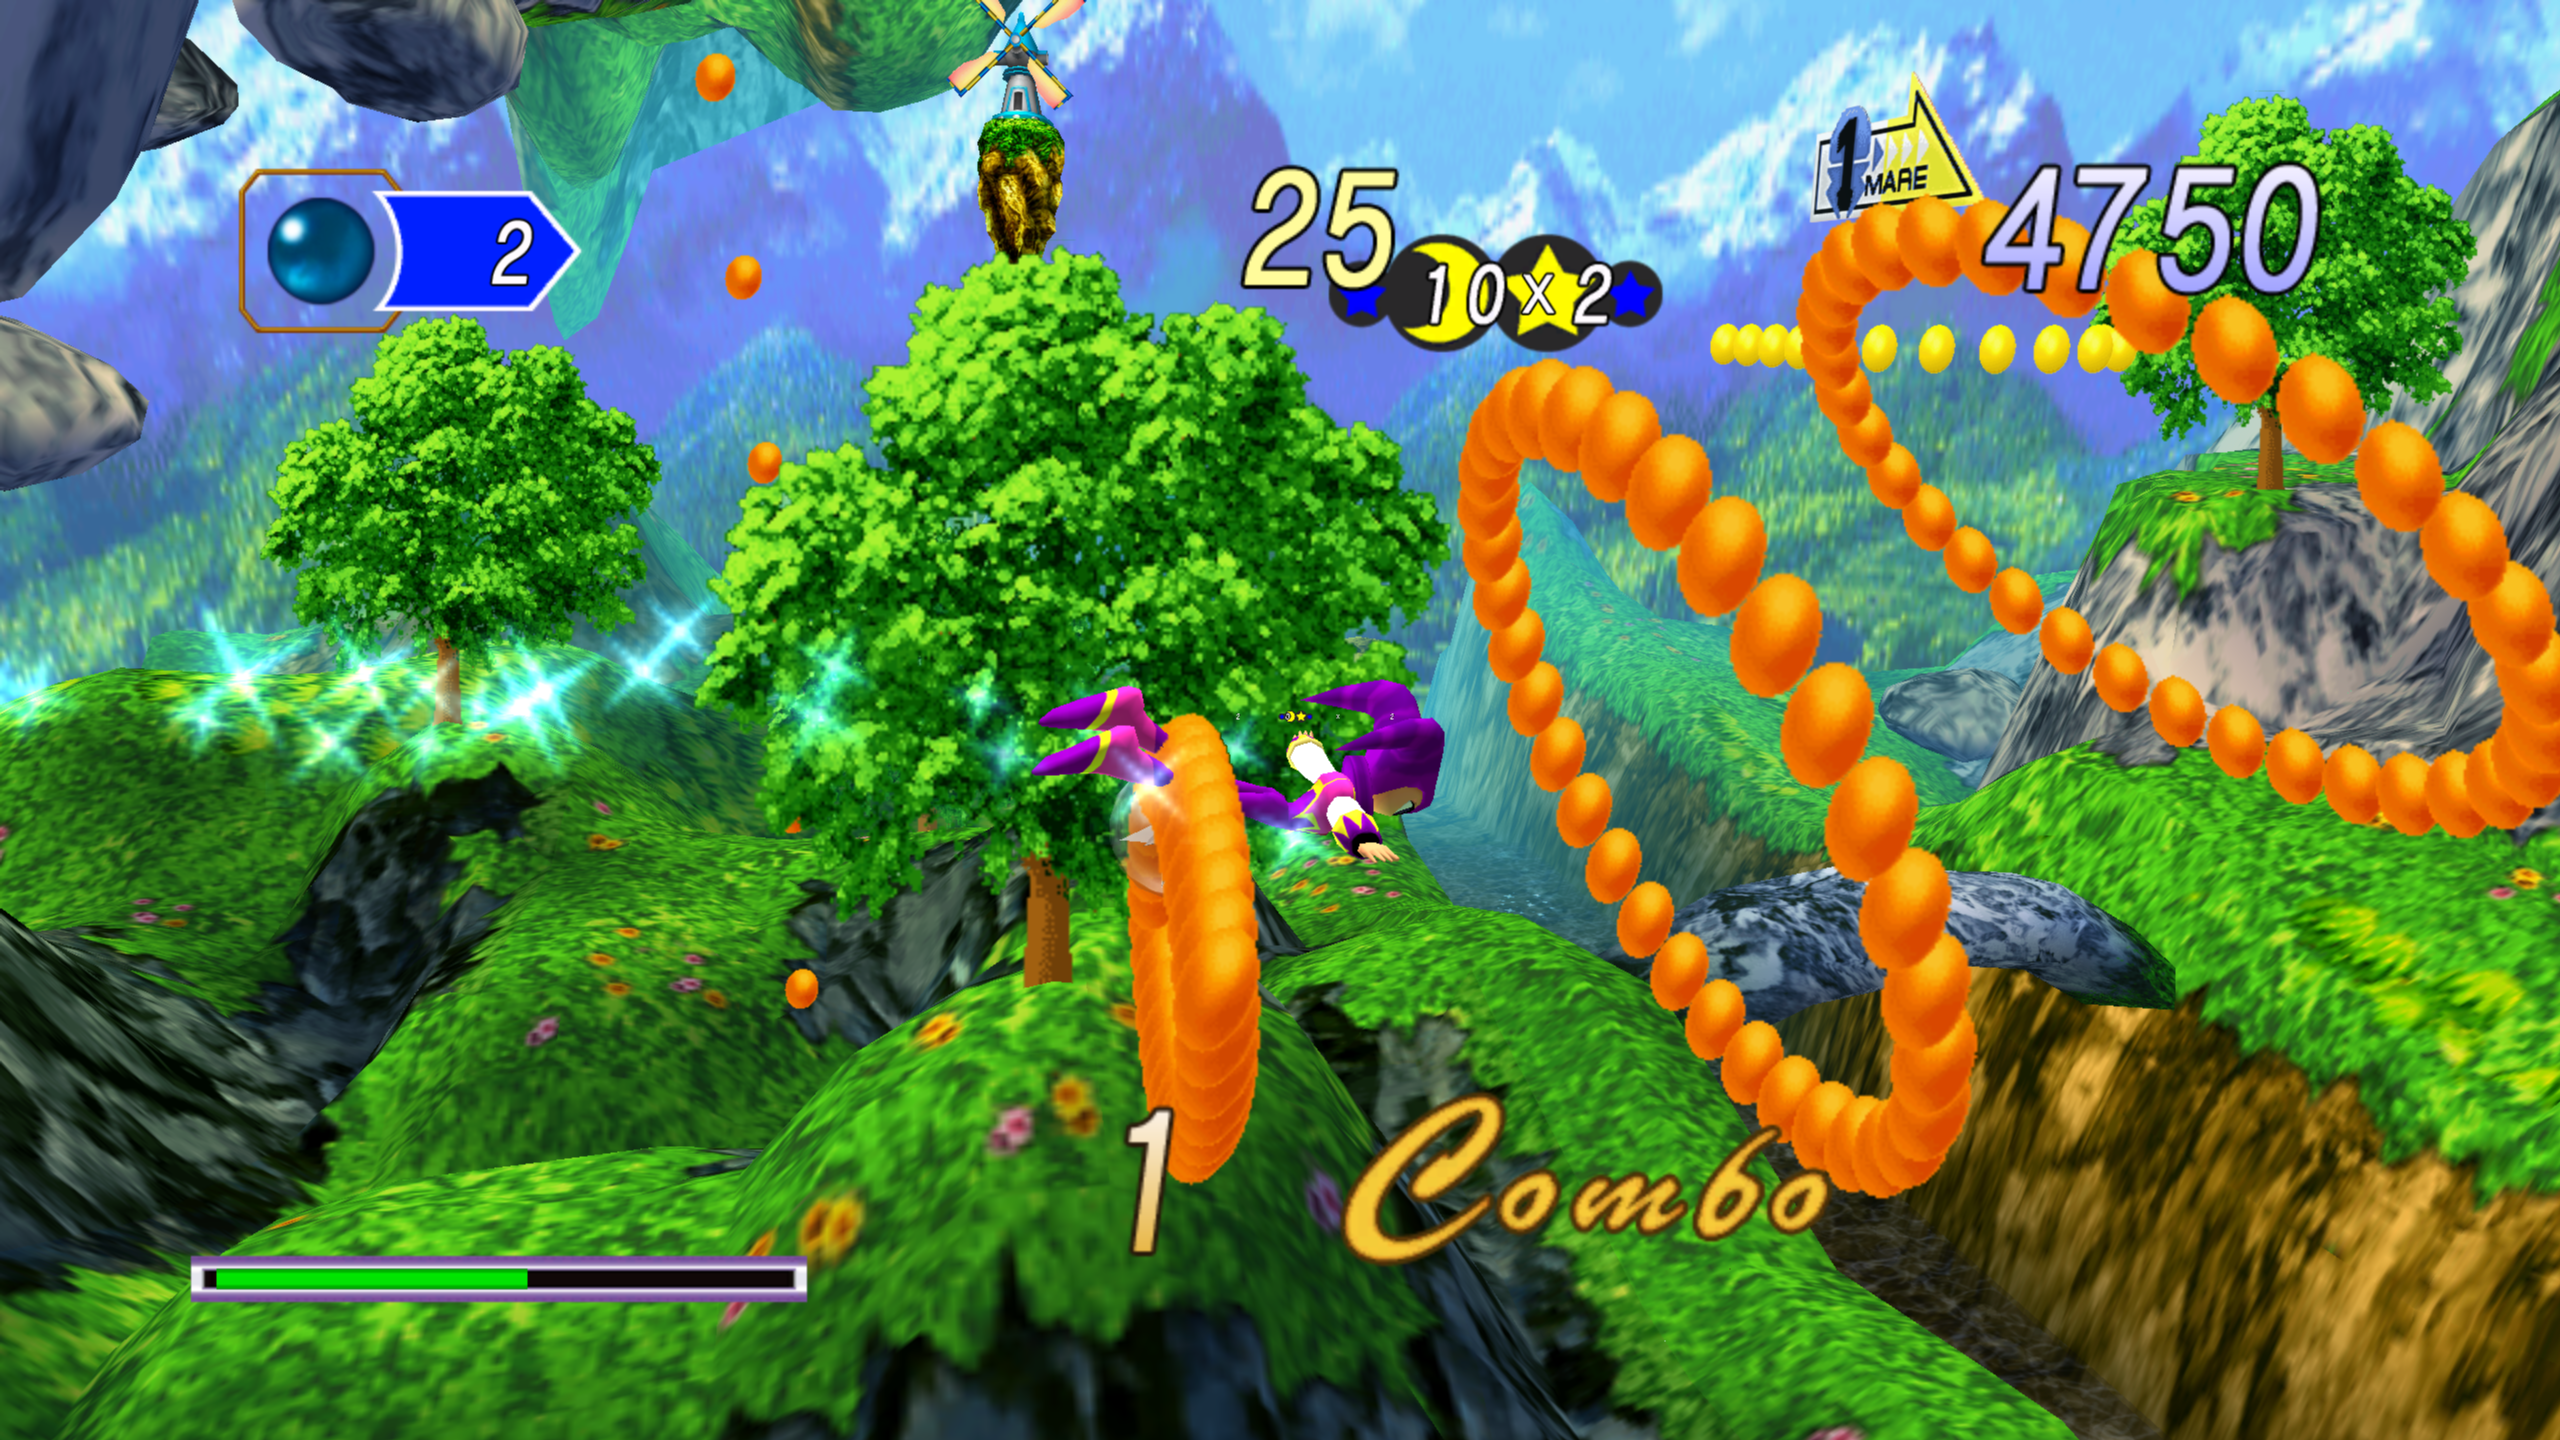 Nights Into Dreams Screenshot 2020.10.18 - 17.41.19.19